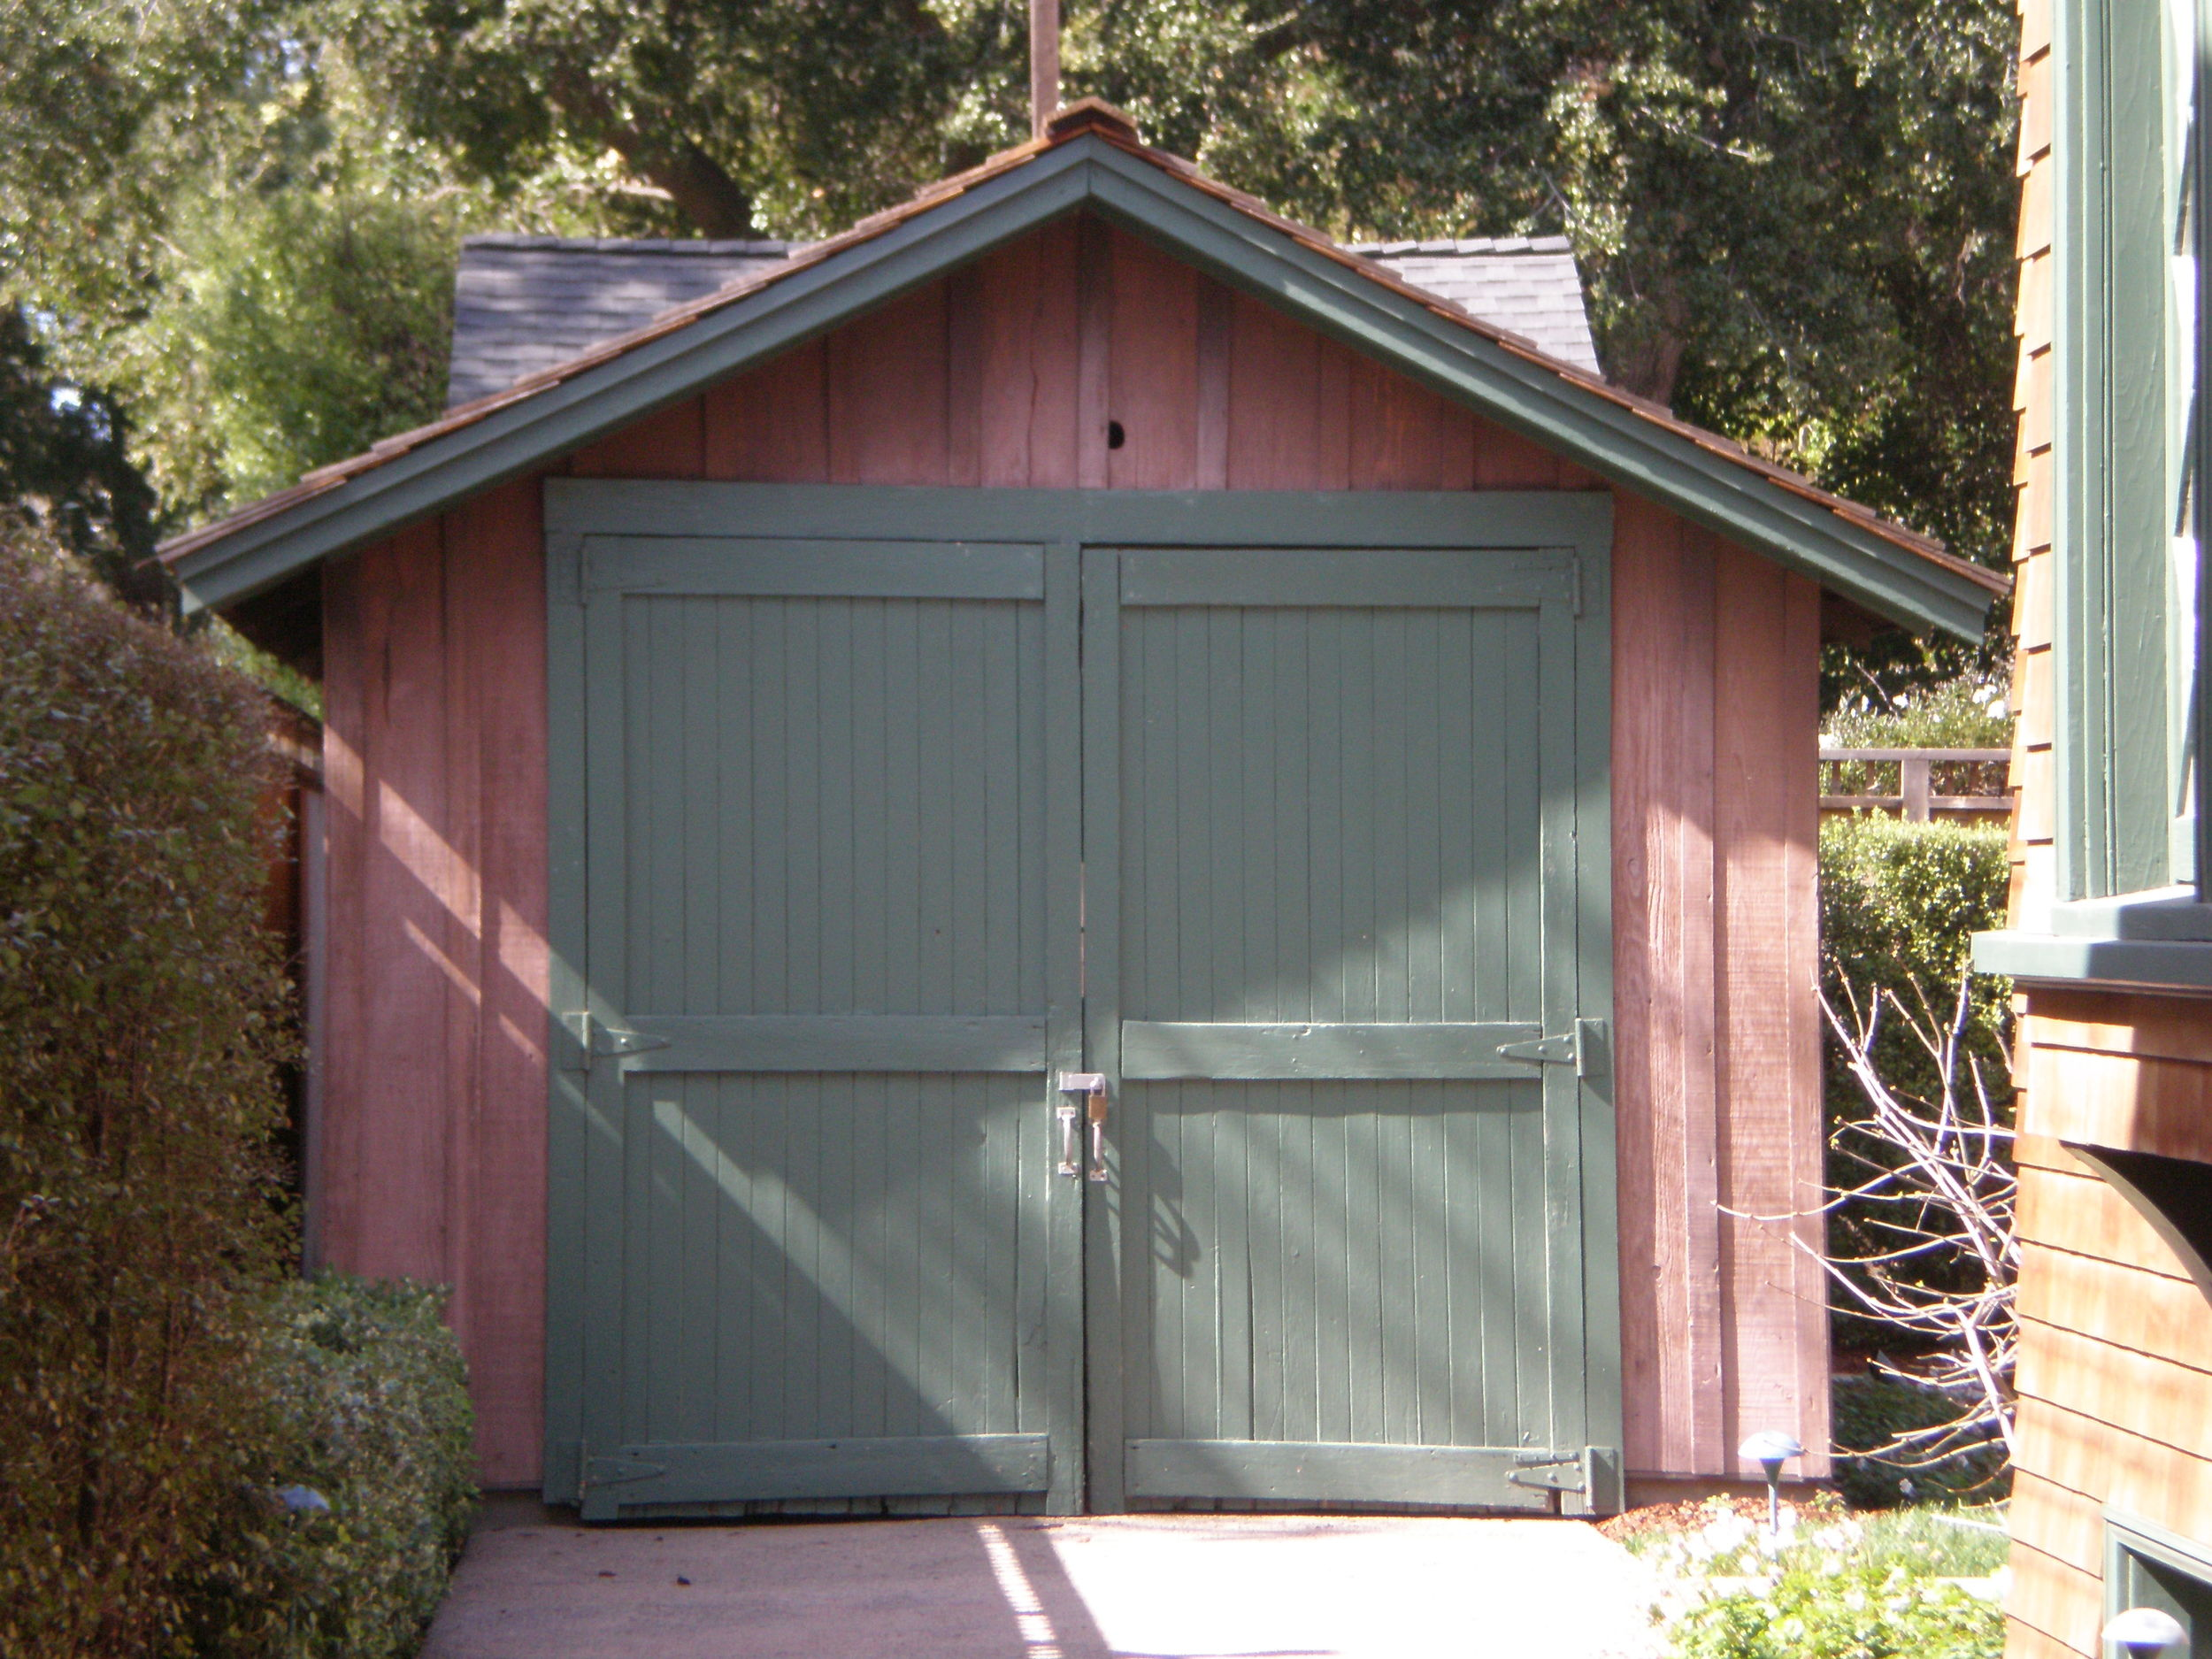 The original shed HP started in